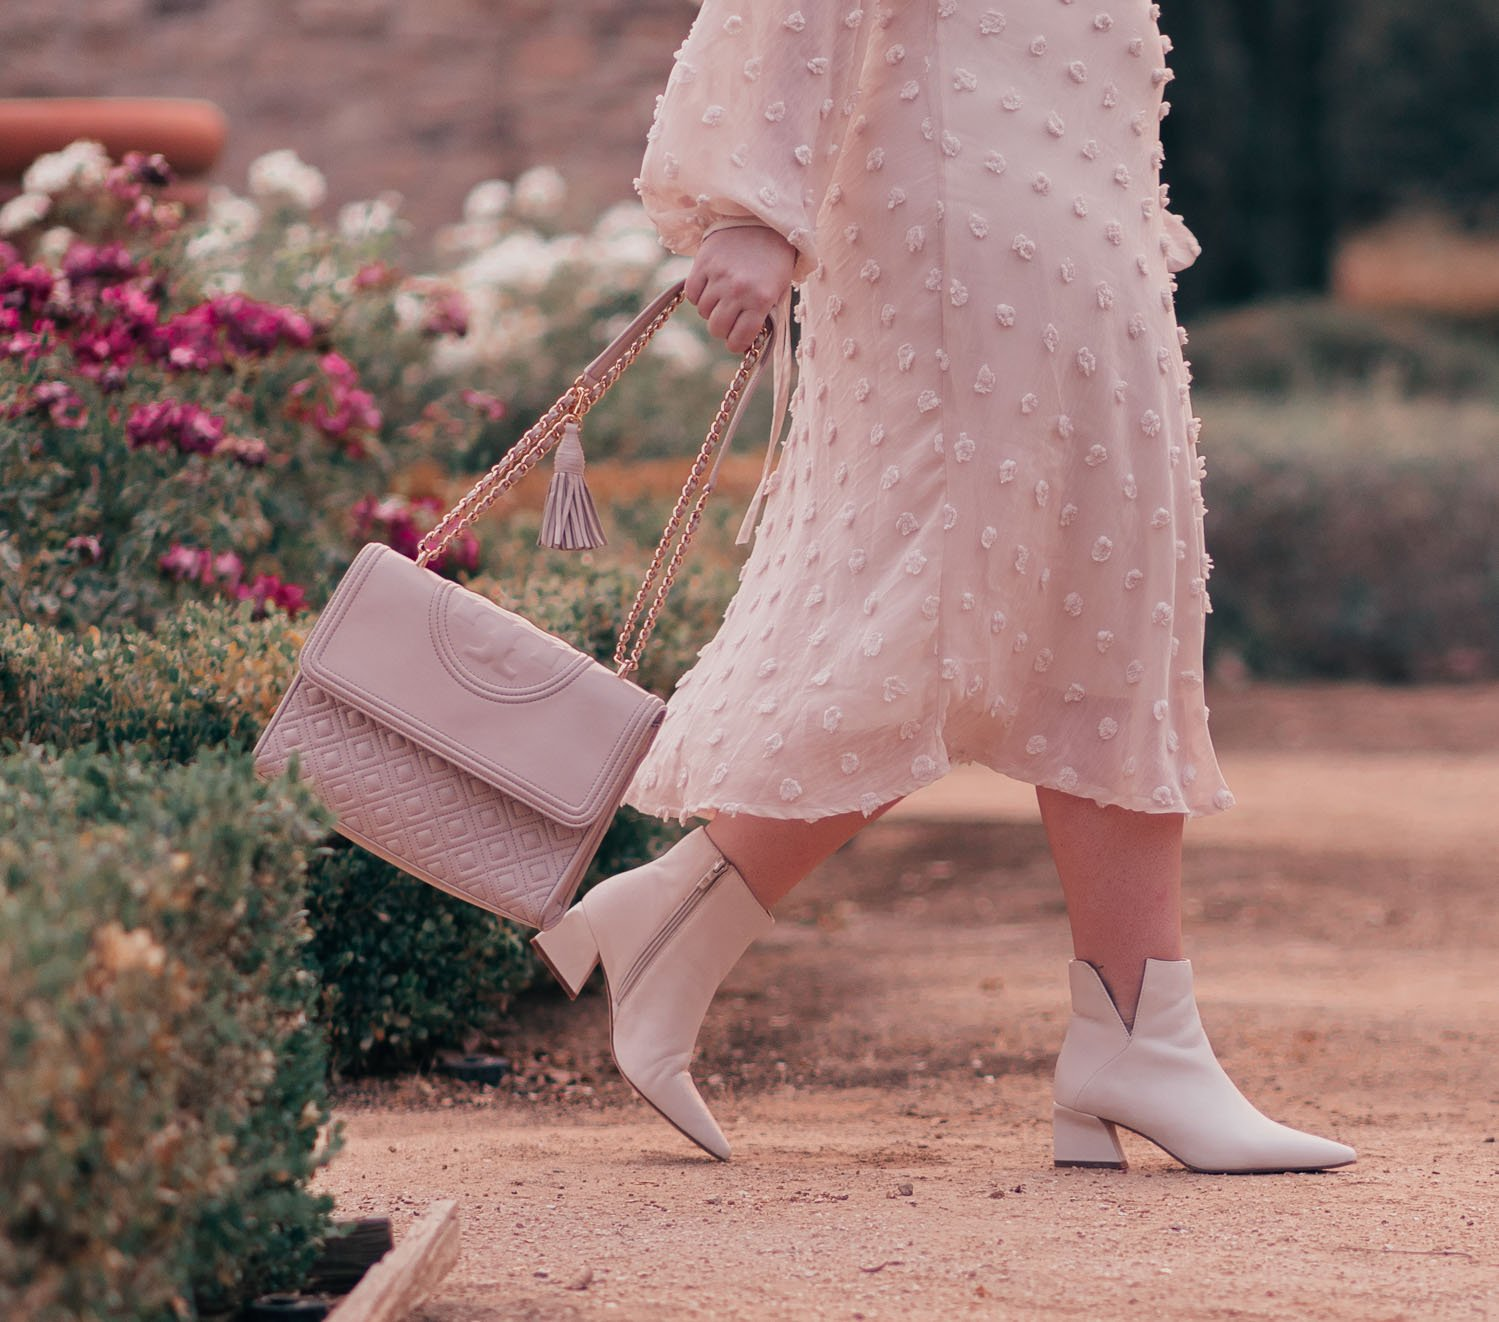 Fashion Blogger Elizabeth Hugen of Lizzie in Lace styles a cozy fall outfit including a Chicwish cream midi dress, white Franco Sarto Boots and a Tory Burch Fleming handbag